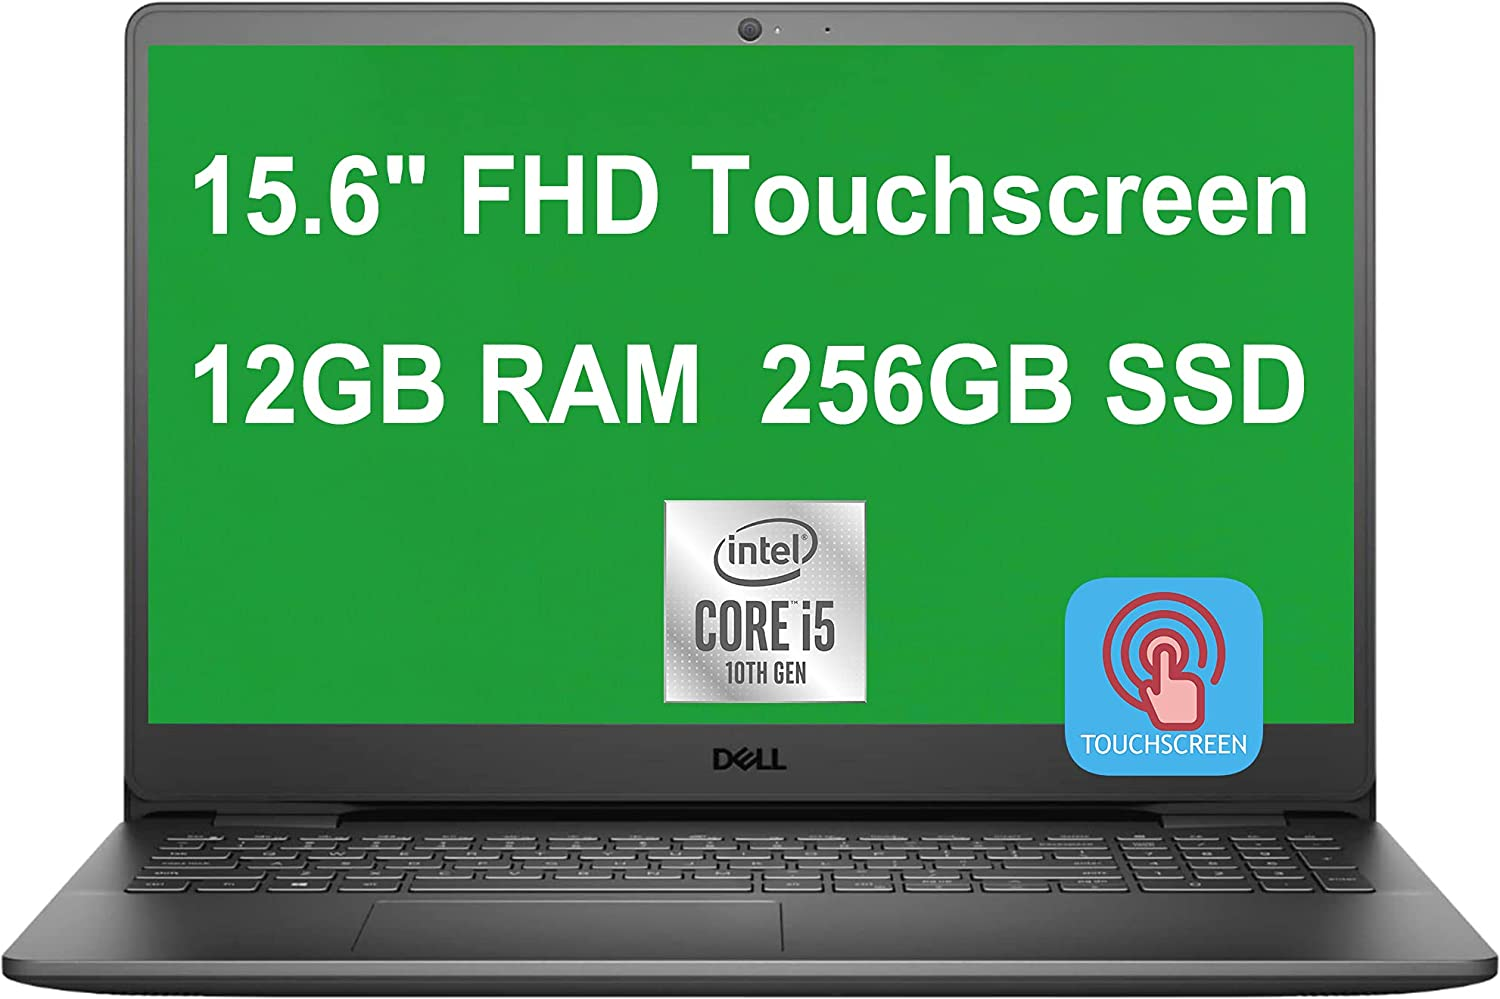 Dell Flagship Inspiron 15 3000 3501 Laptop Computer 15.6